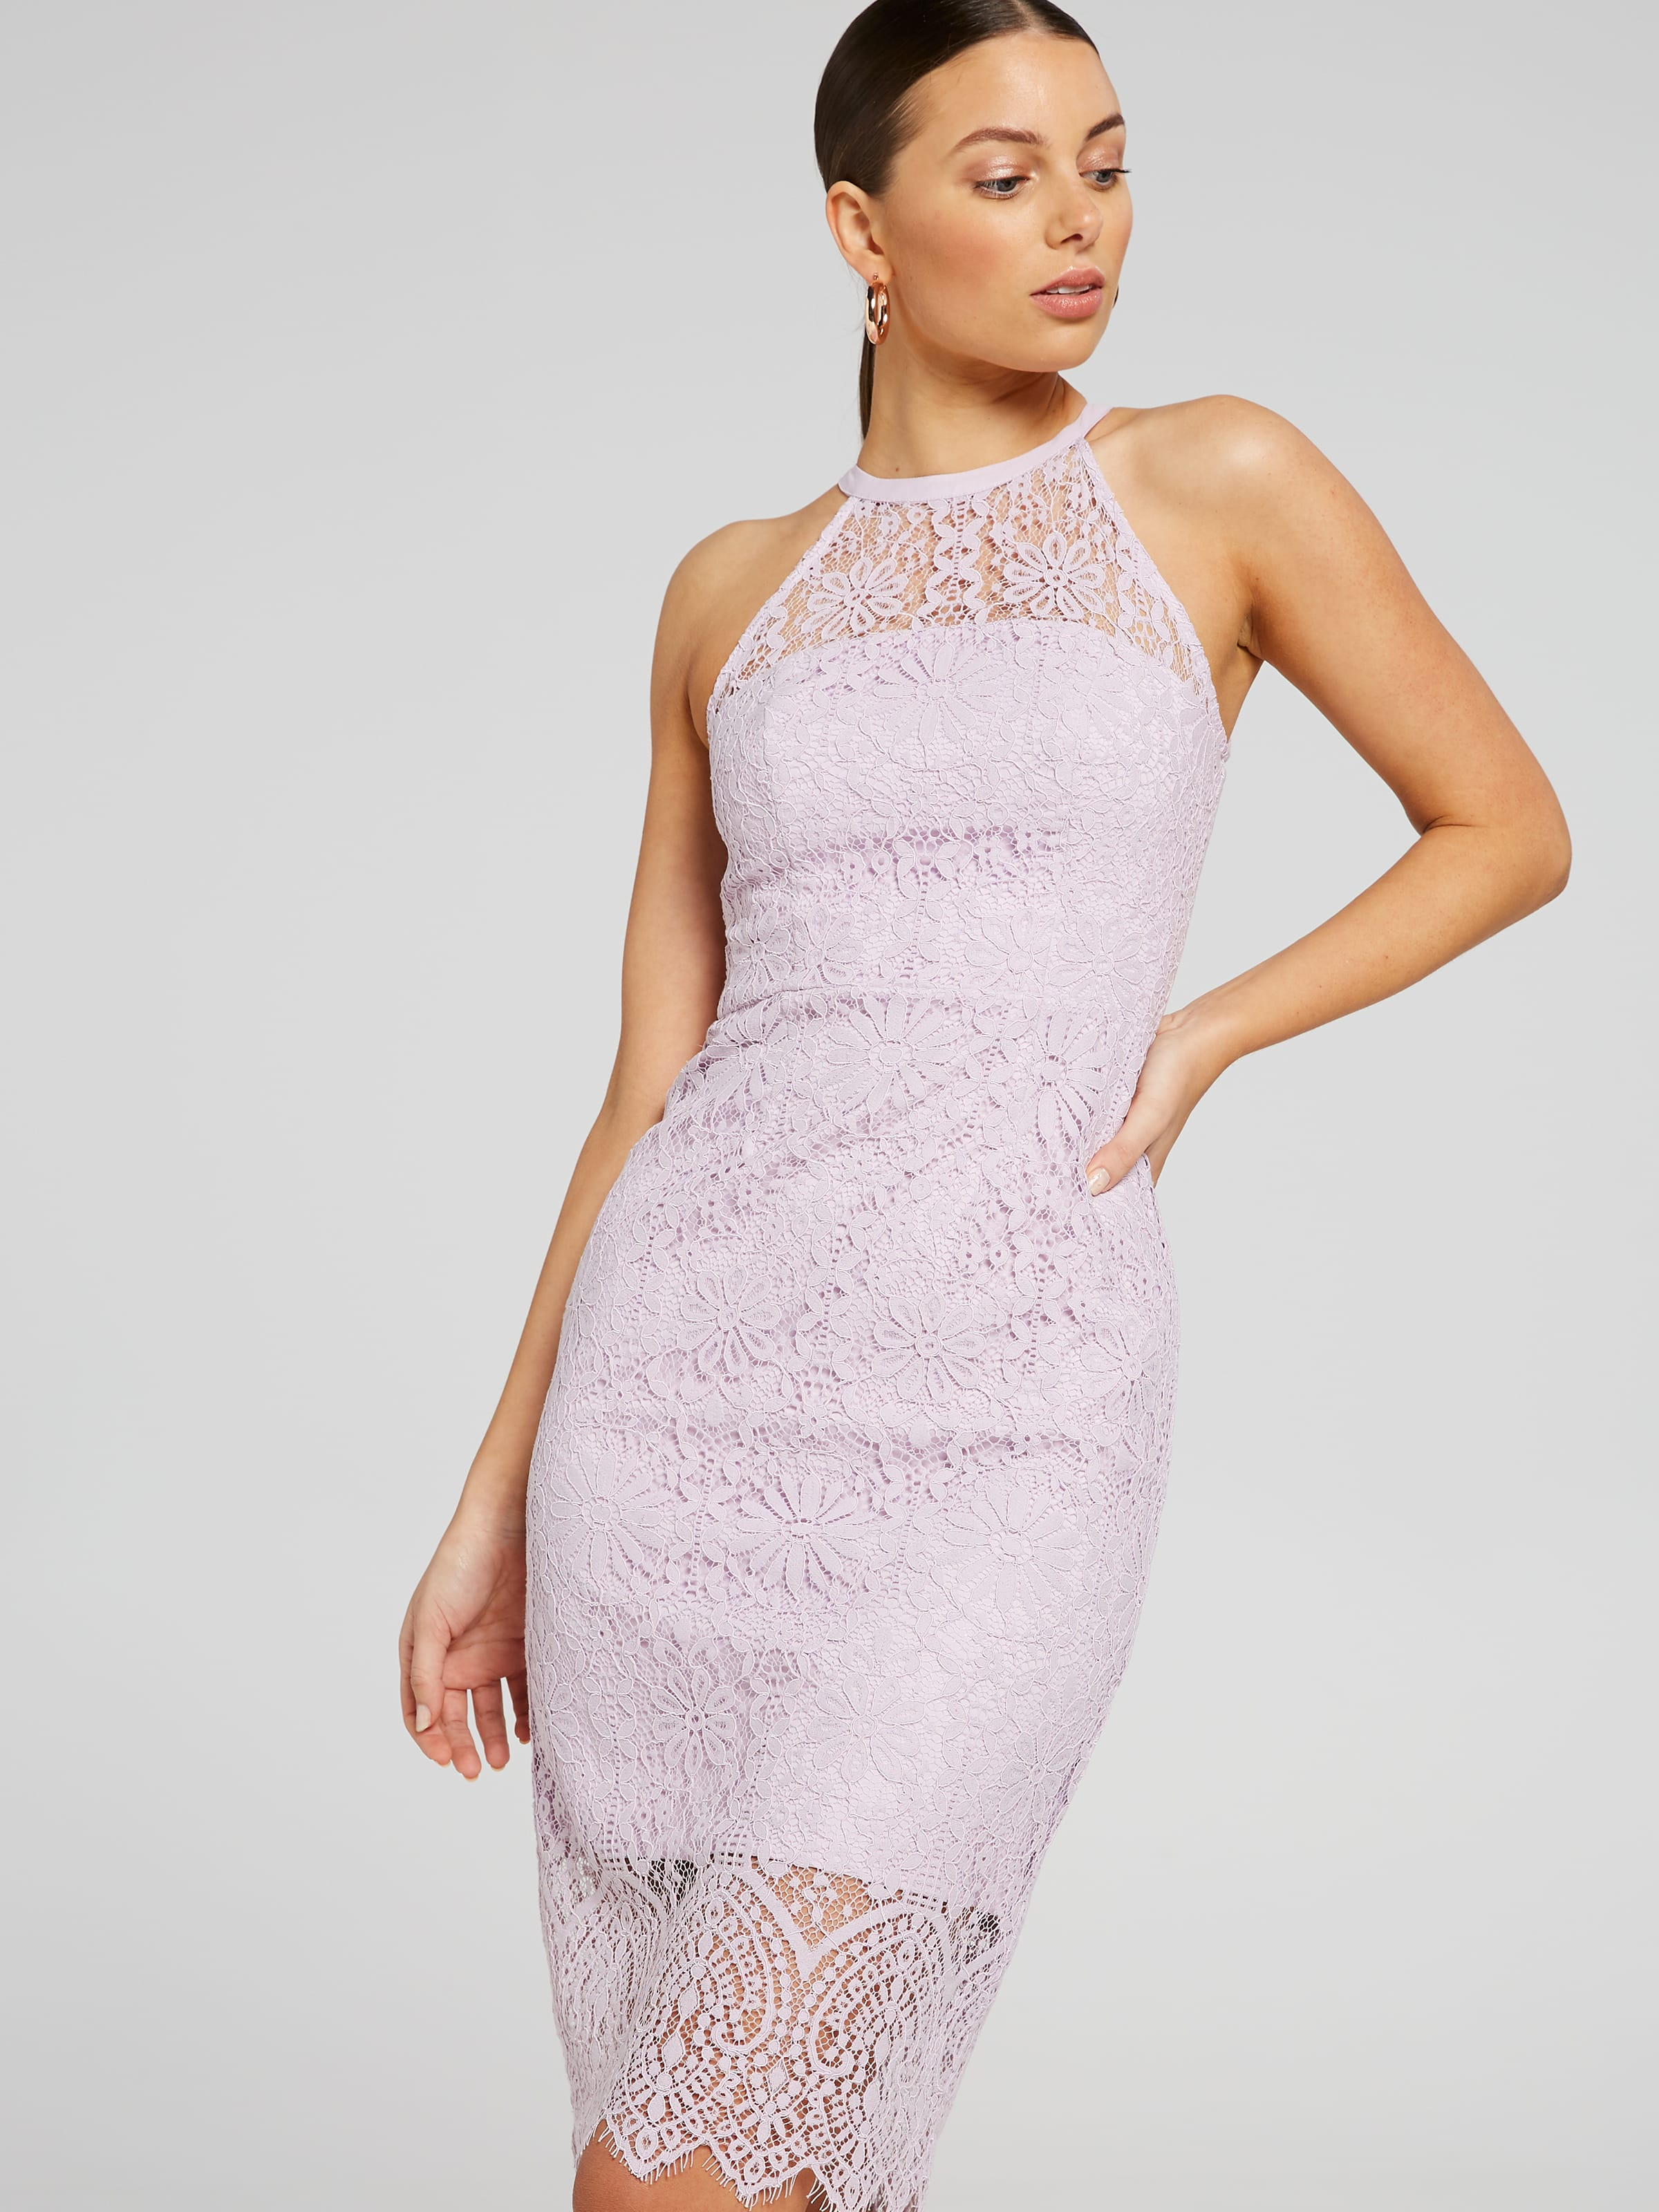 040f3eb9264ad 30% OFF SELECTED DRESSESLimited Time Only · Image for Kaia Halter Lace Dress  from Portmans Online ...